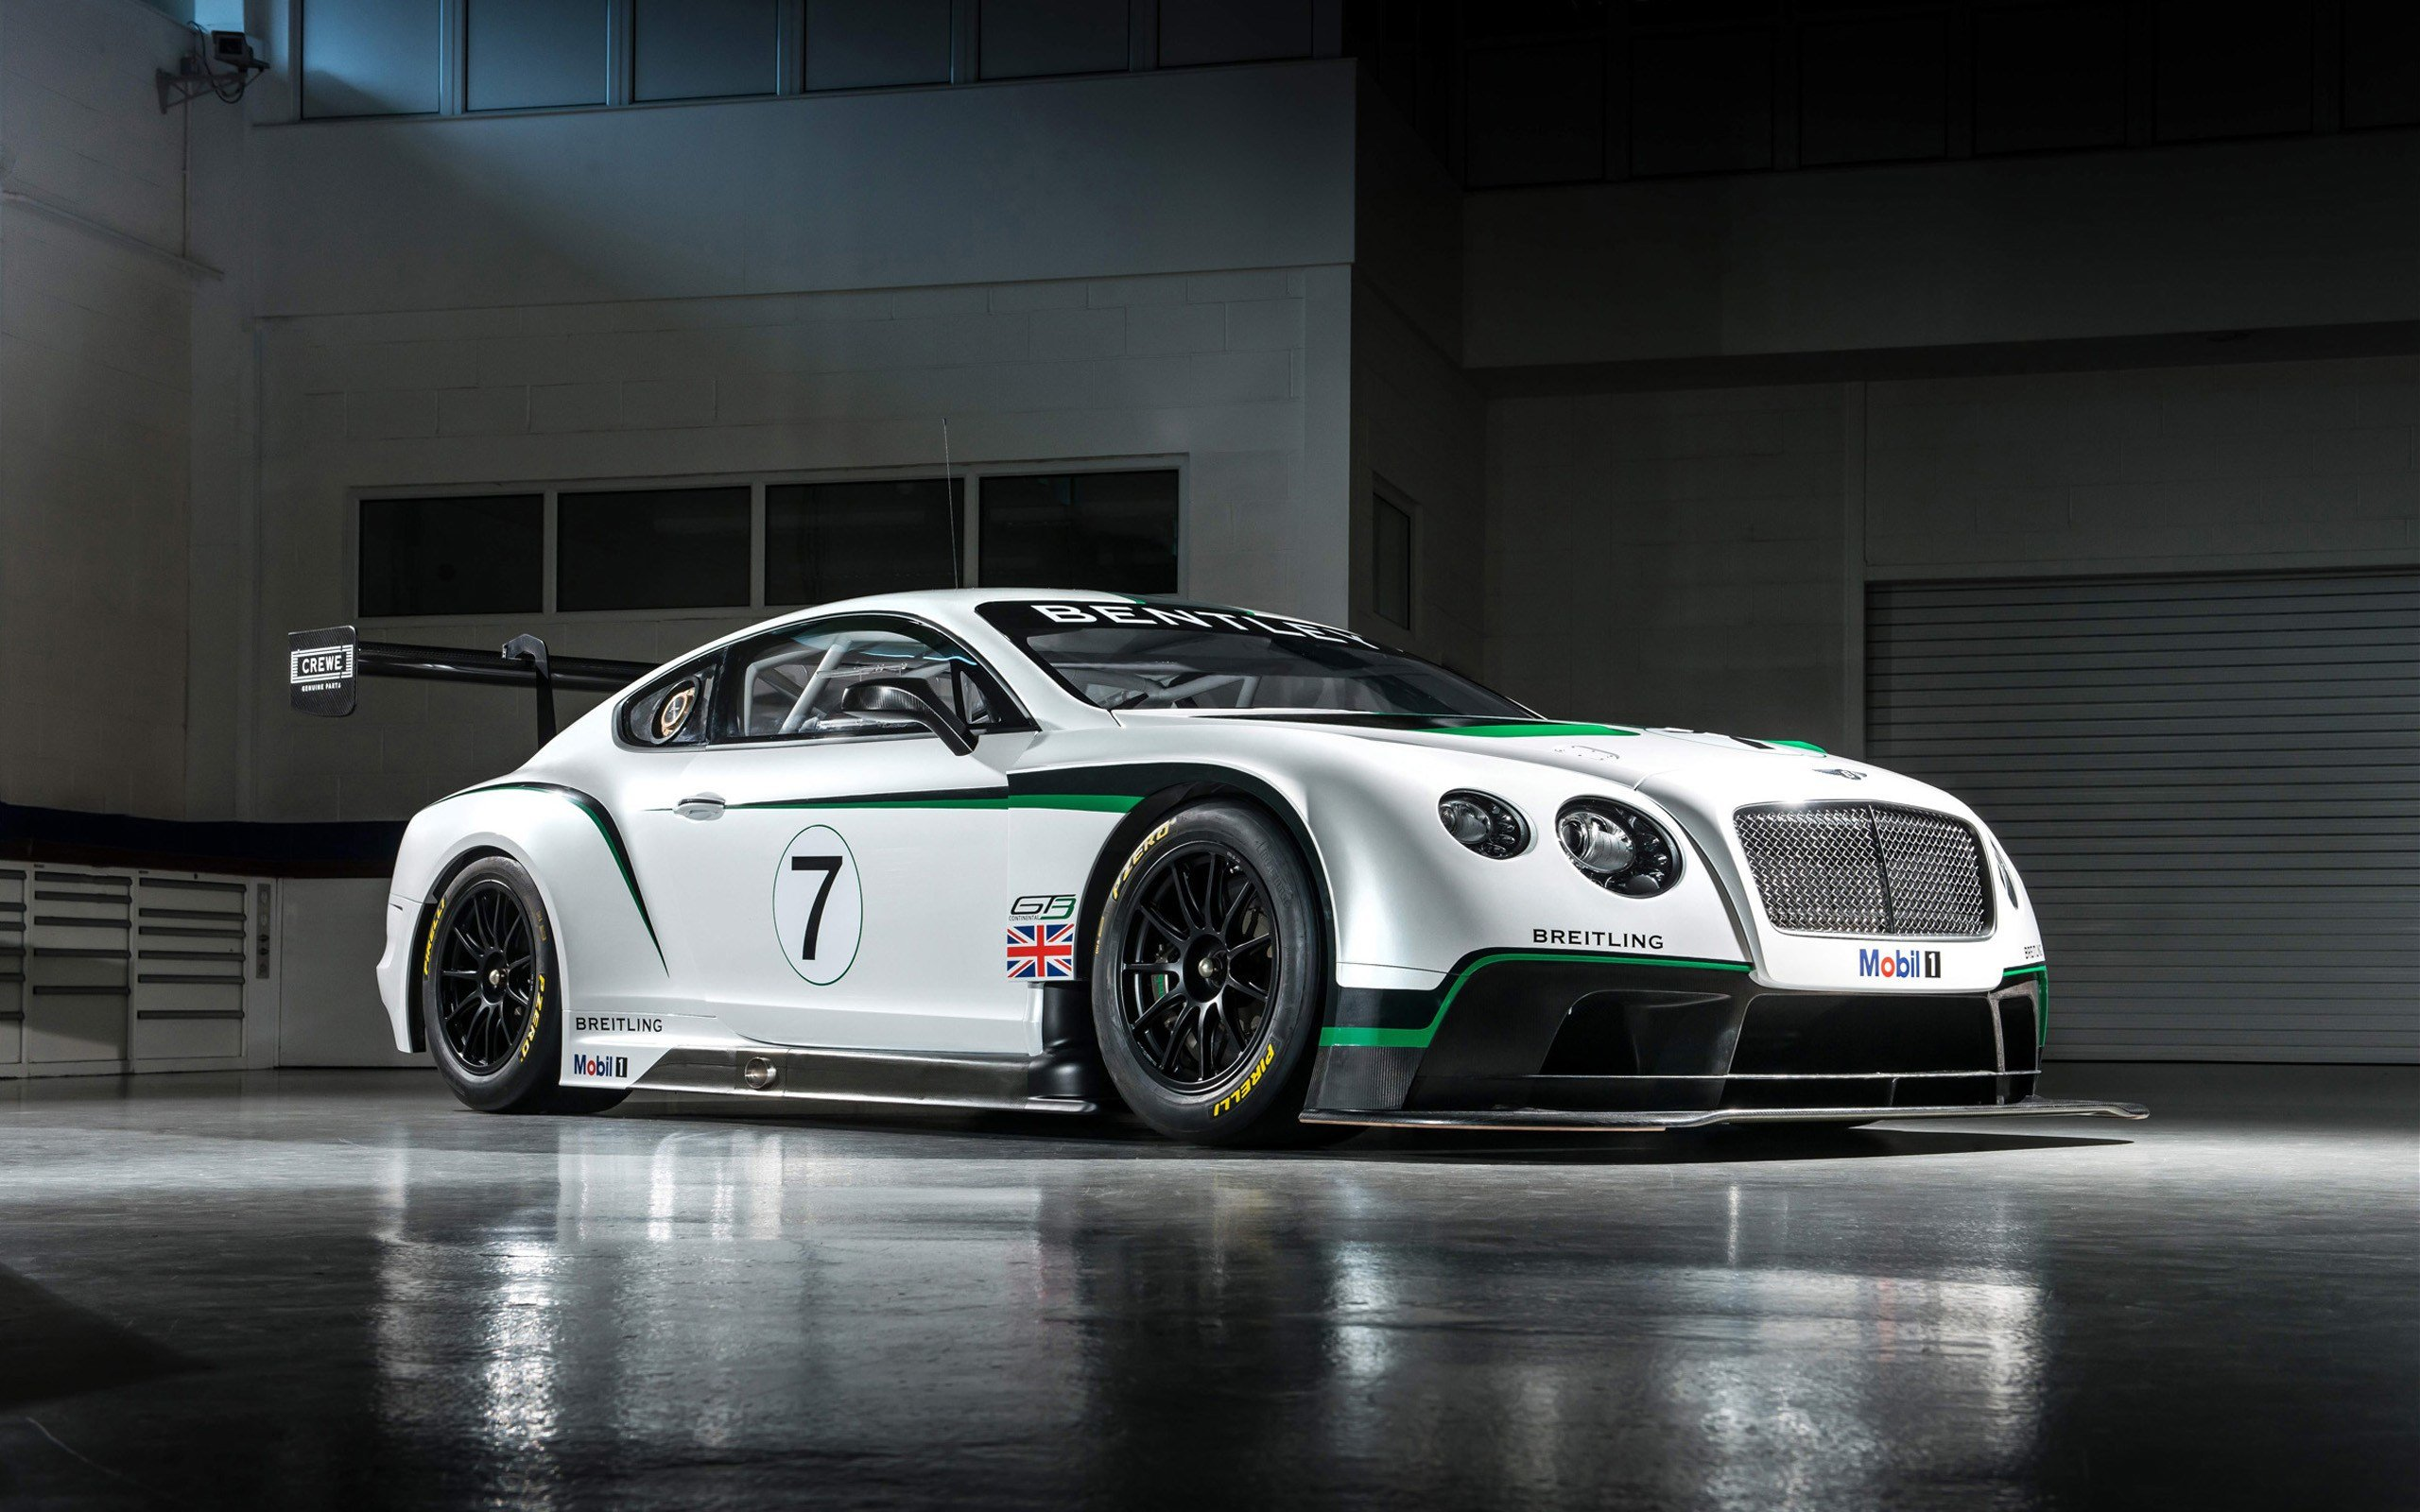 Latest 2013 Bentley Continental Gt3 Wallpaper Hd Car Wallpapers Free Download